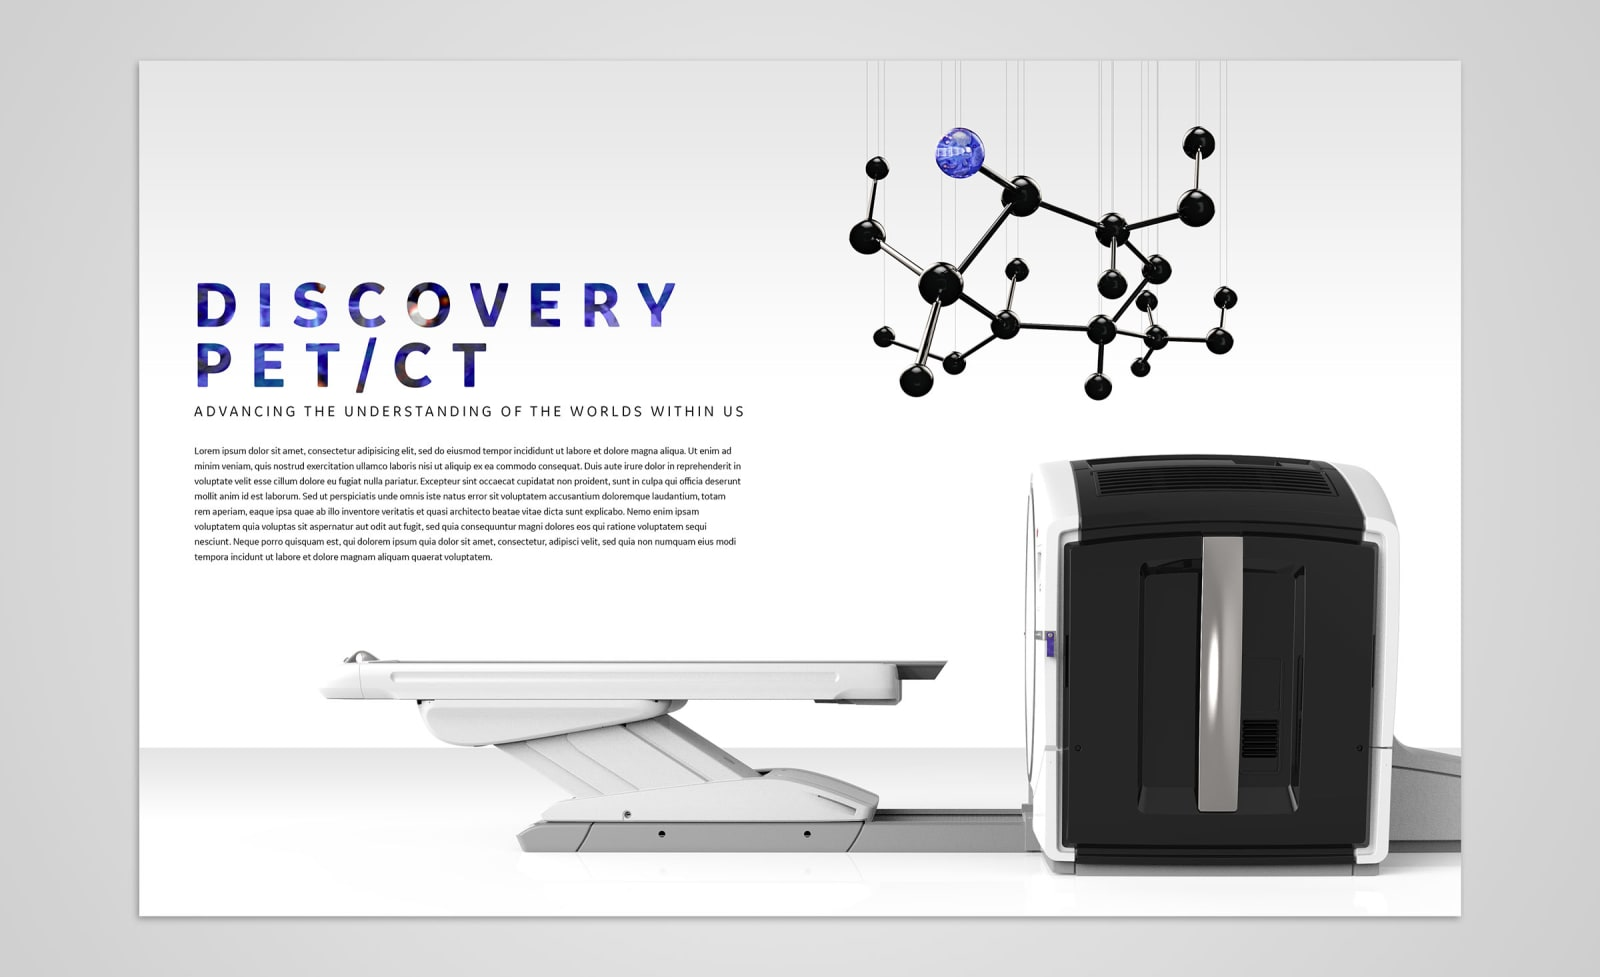 GE Discovery Constellations Pet/CT Spread